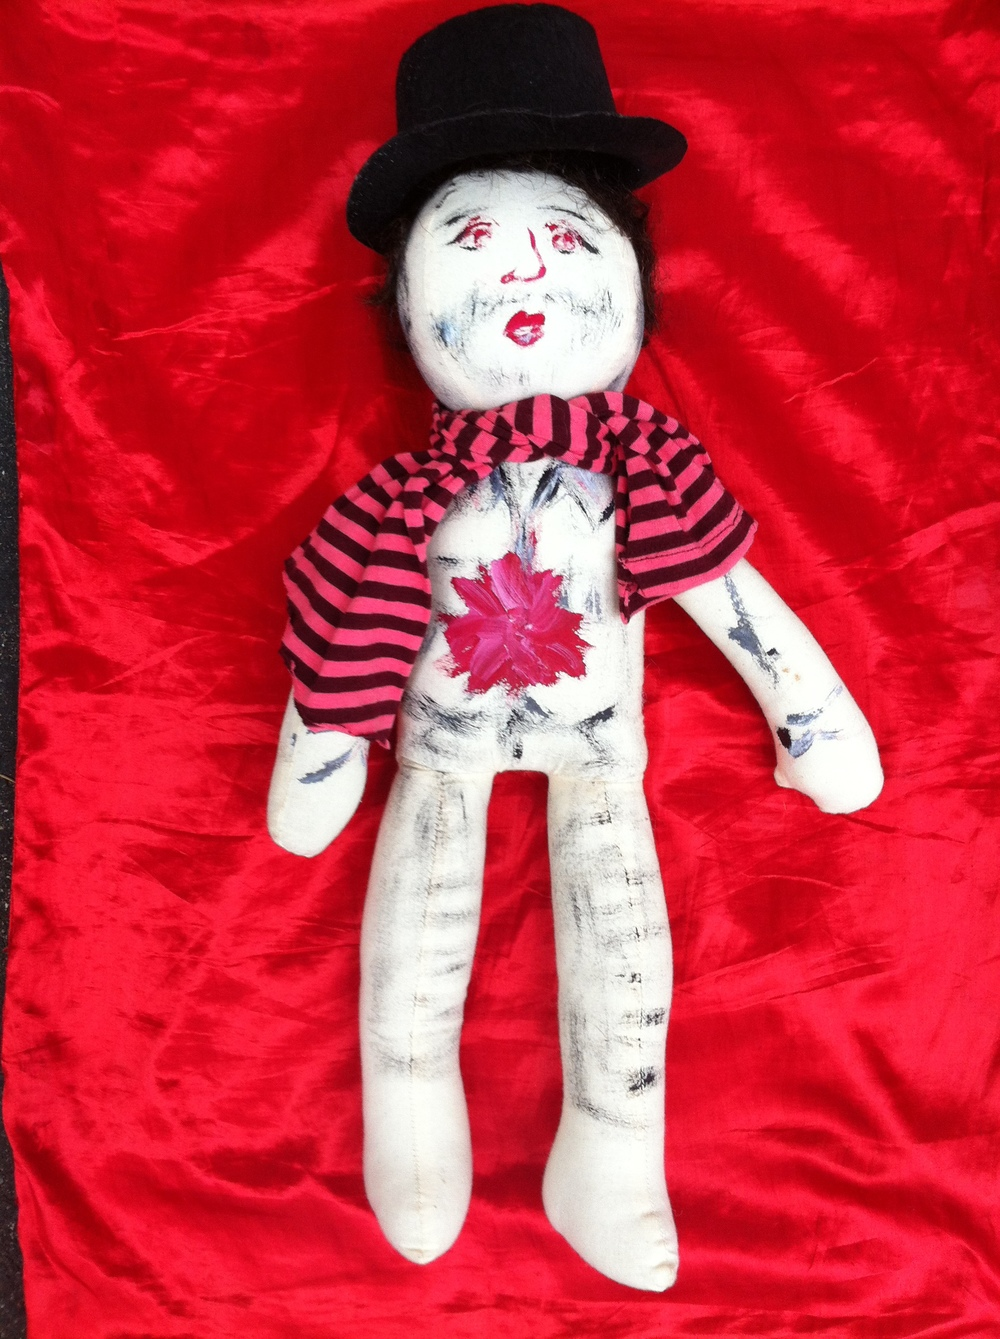 Magic Marc Doll by Gretchen Seichrist - 2013